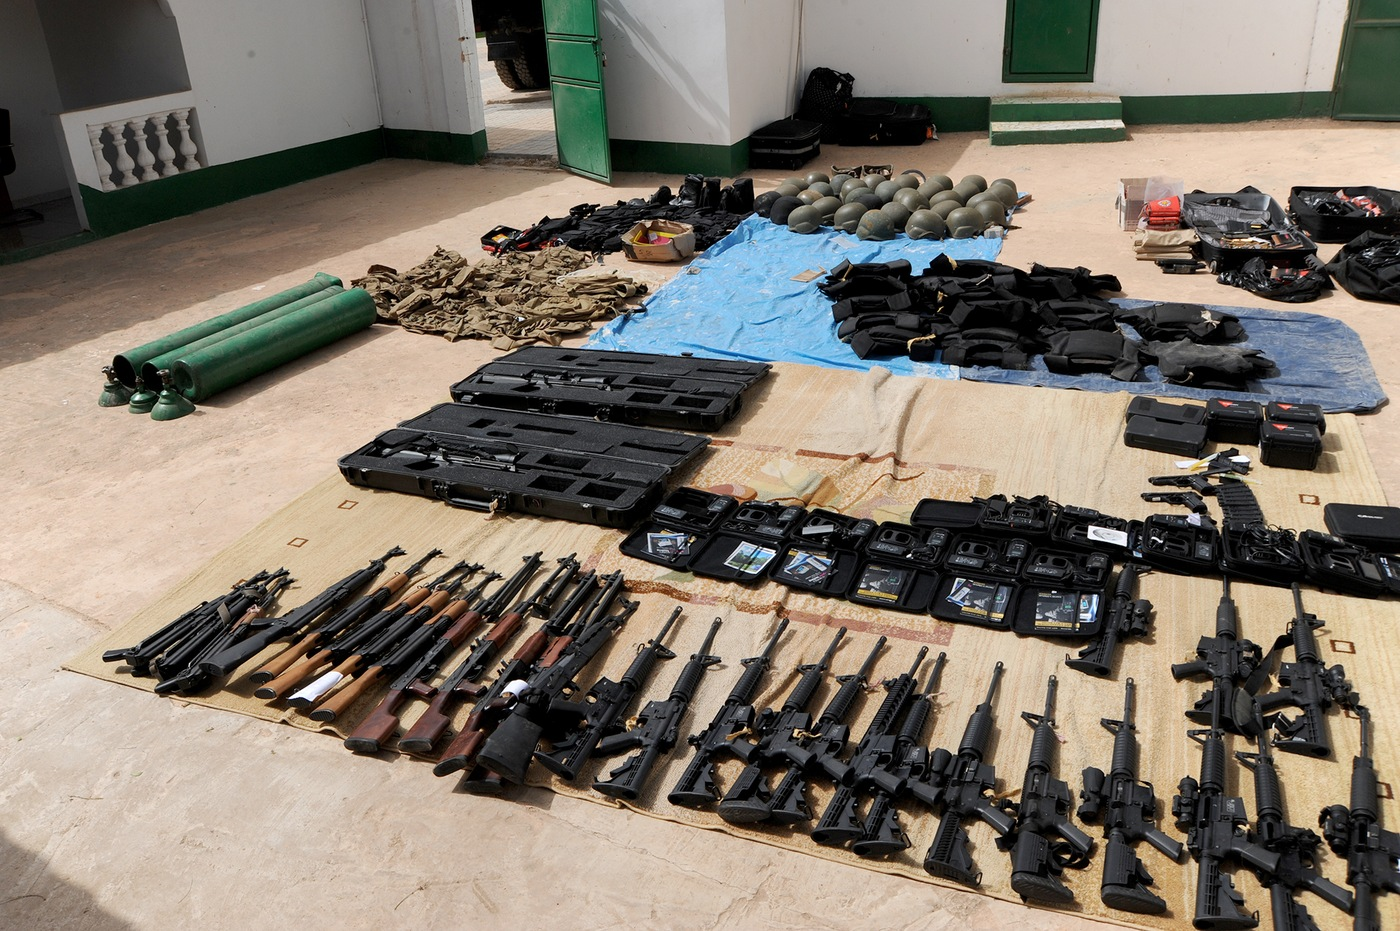 Gear used and stockpiled for an unsuccessful coup attempt in The Gambia in 2014, seized by national forces.